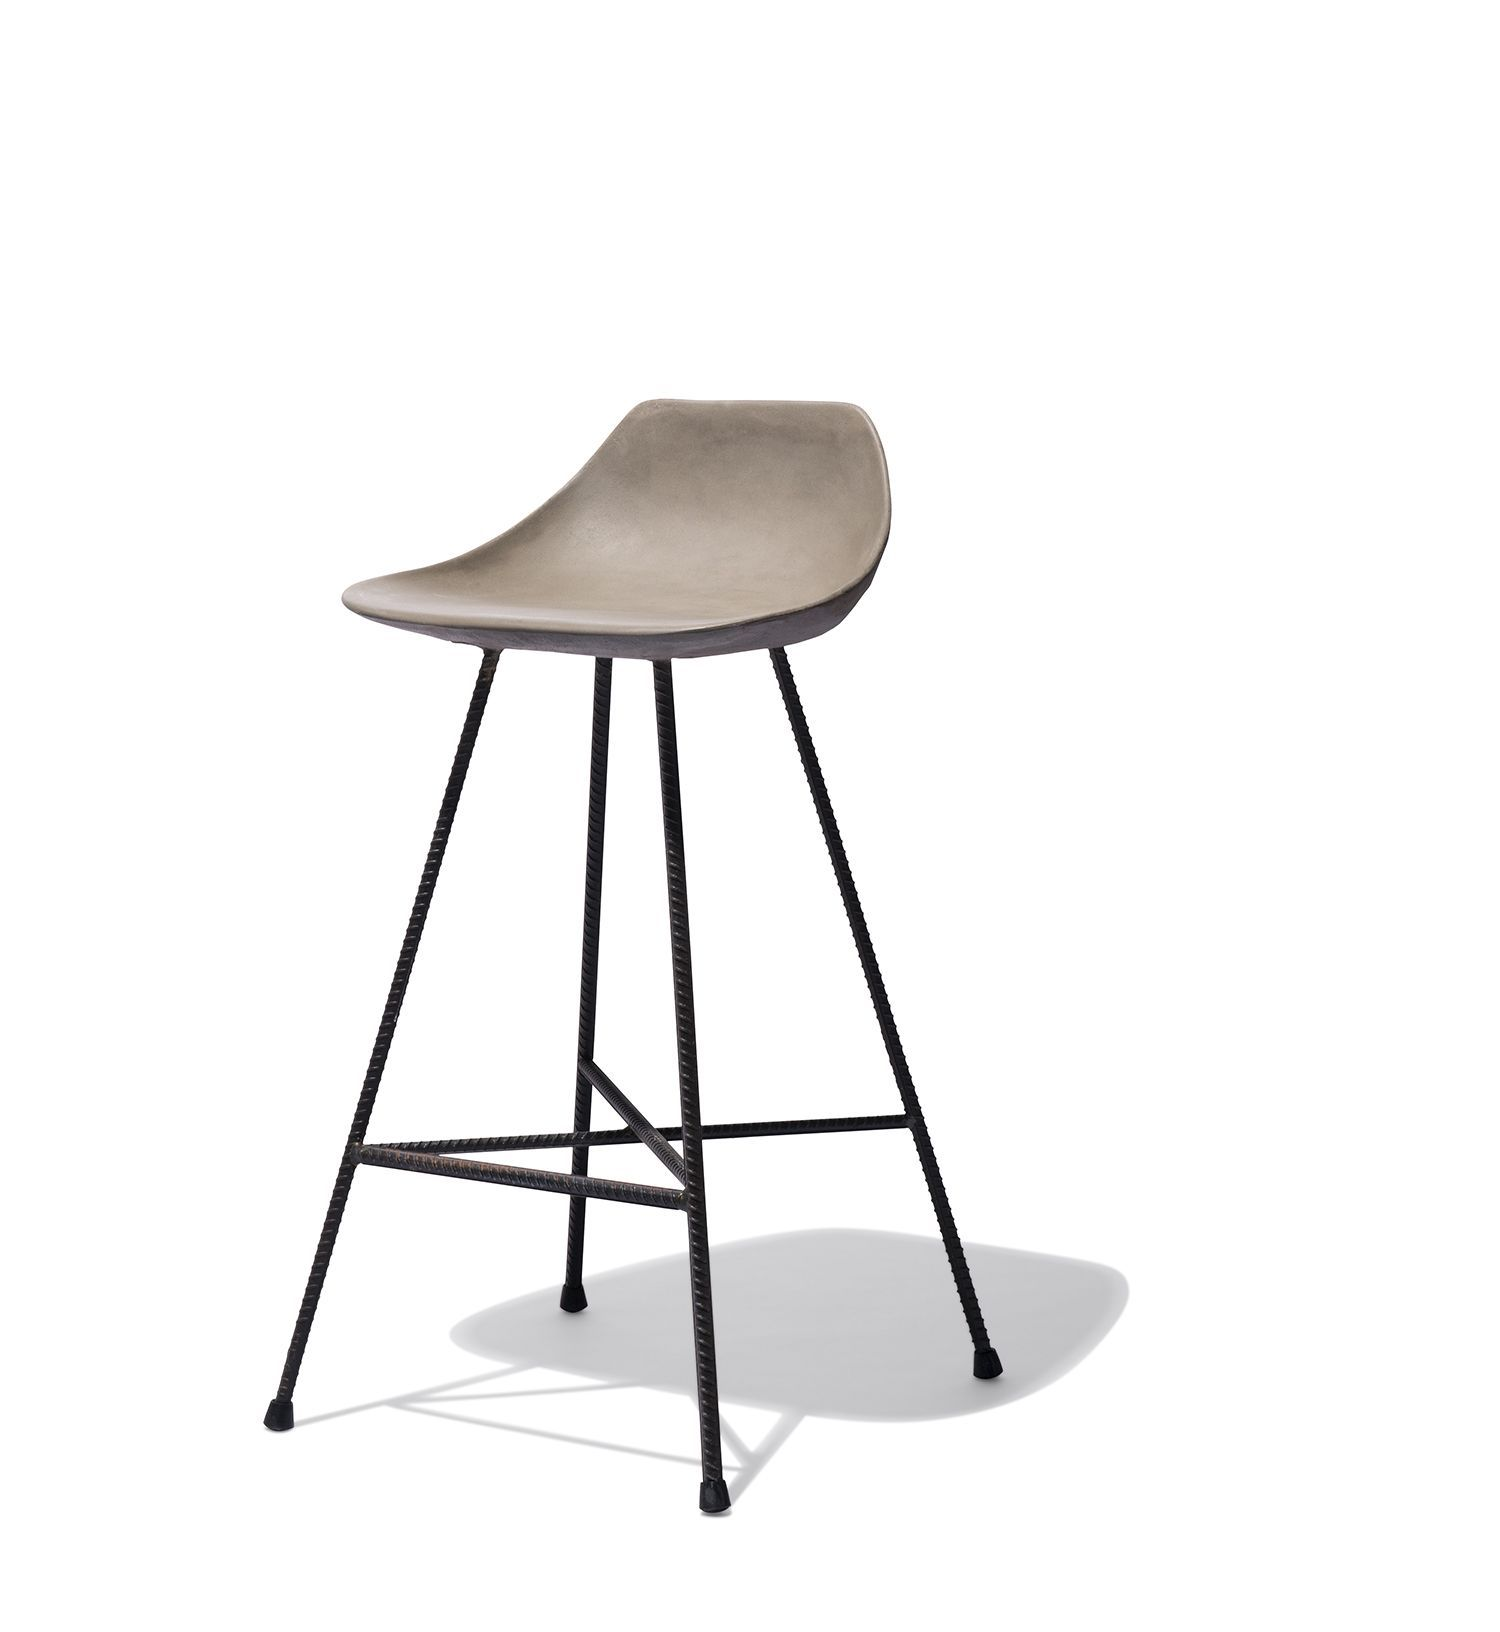 Pin By Iffah Fathin On Style: Hauteville Counter Stool - Stools - Shop